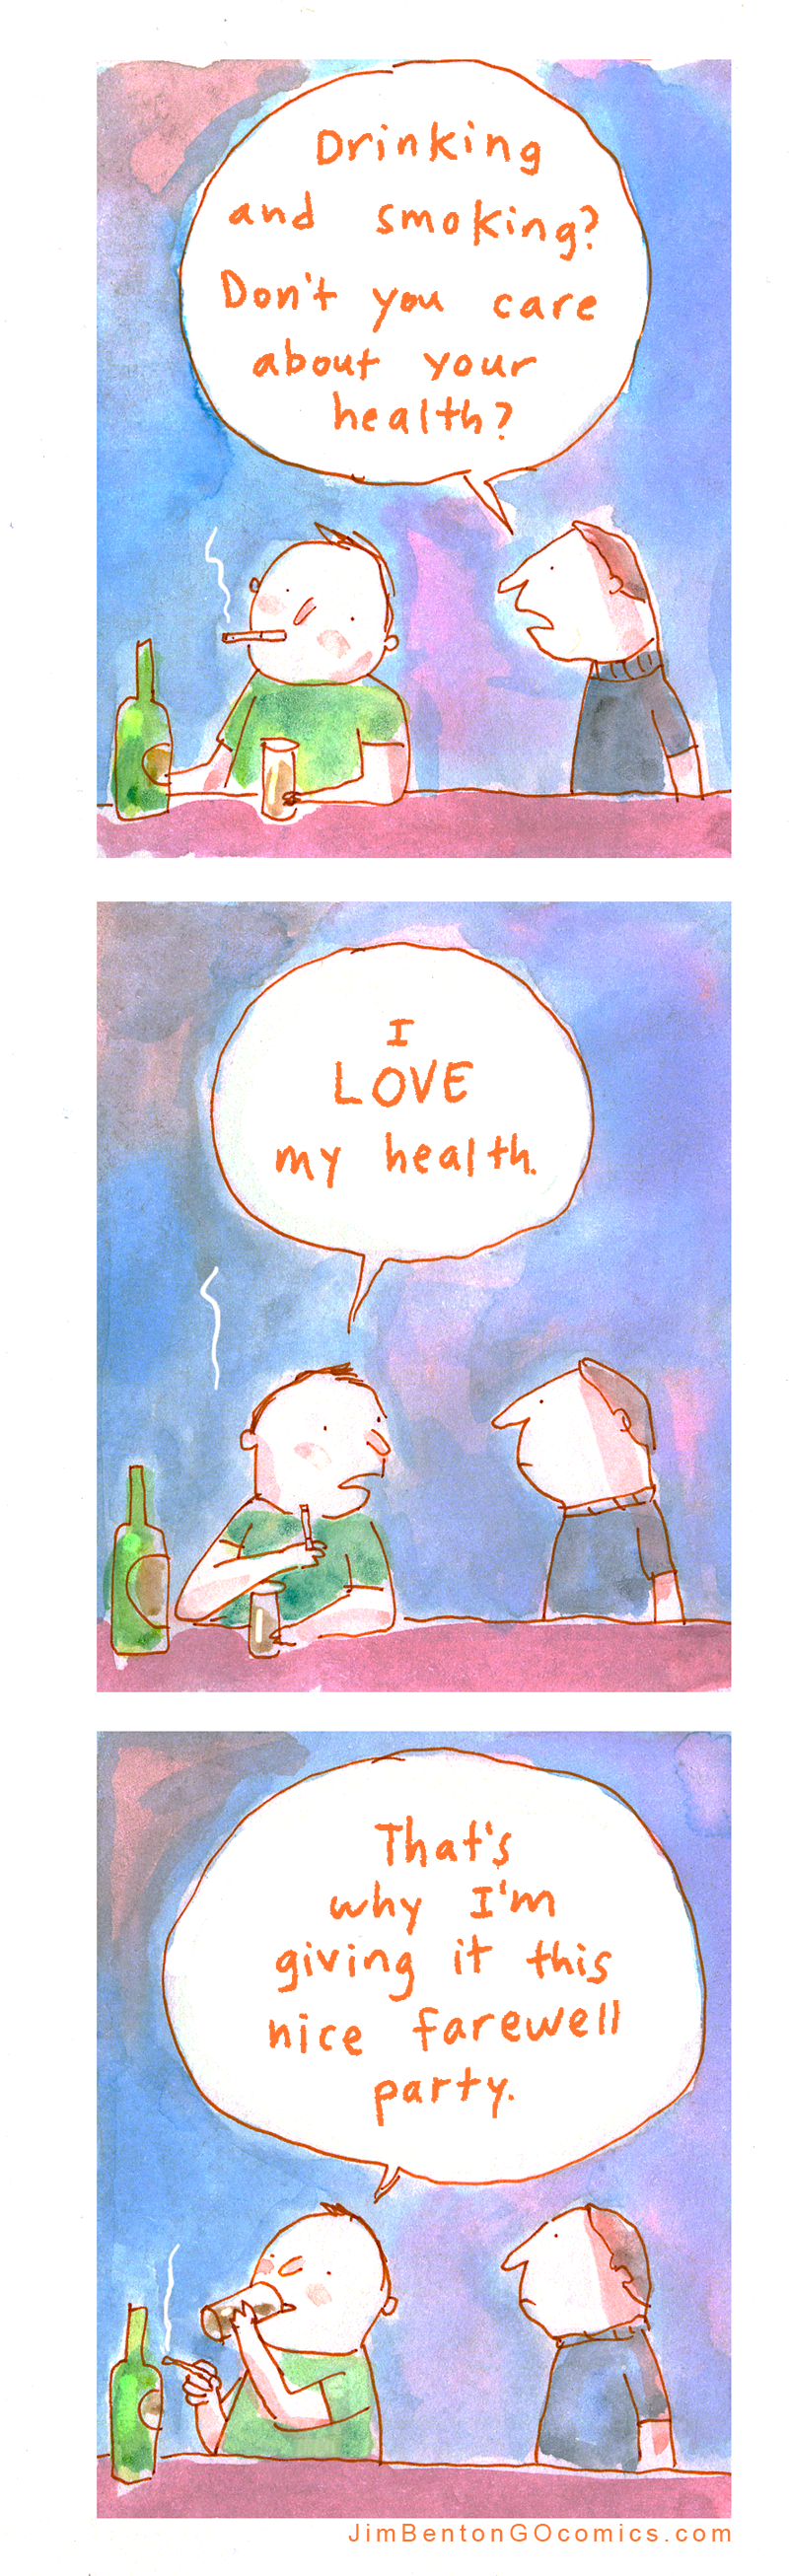 drinking-smoking-web-comics-unhealthy